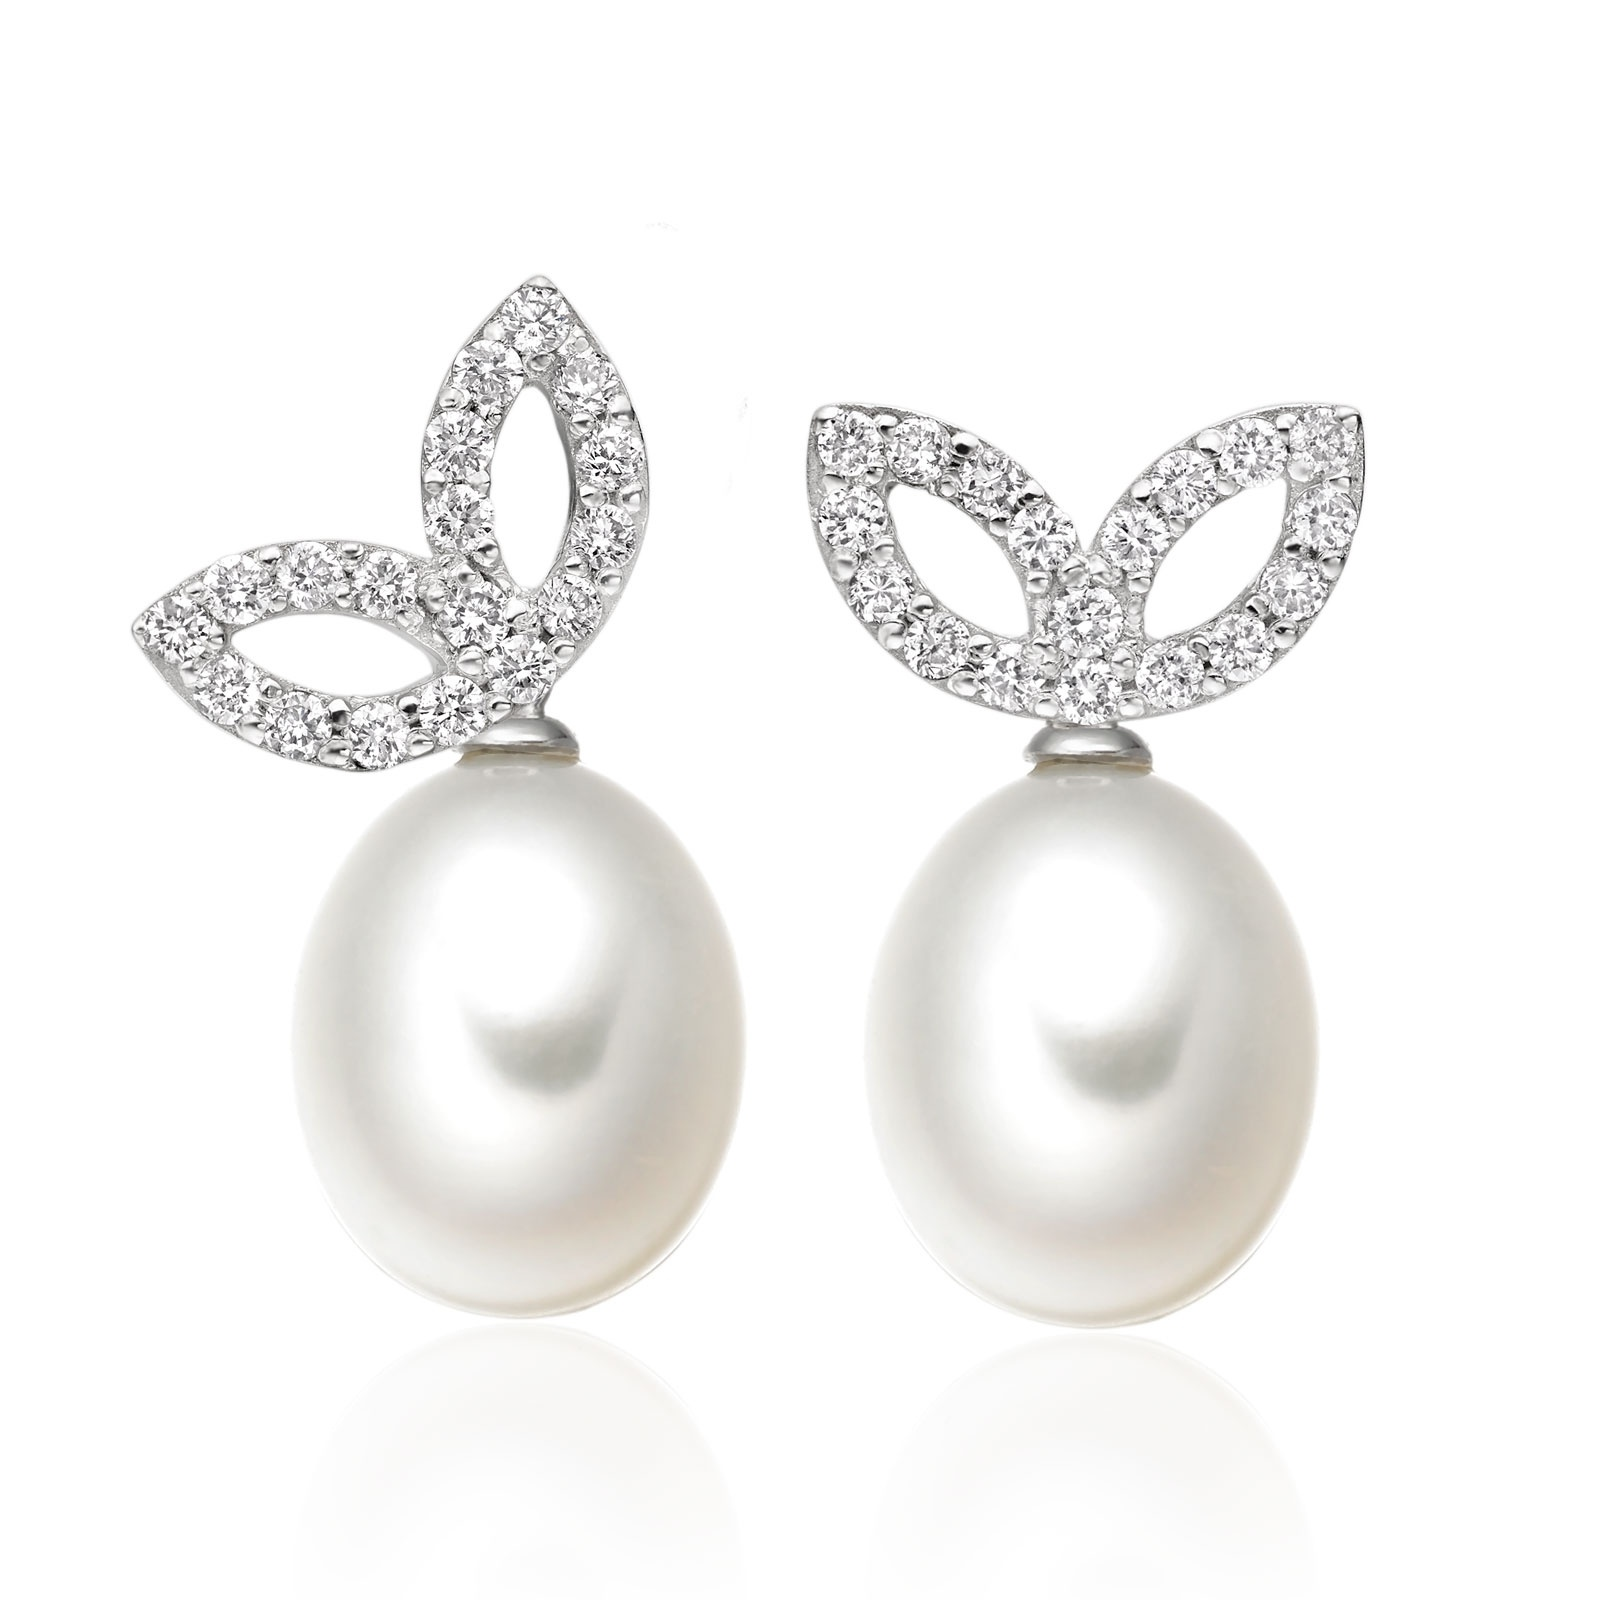 Enchanted Diamond Studs in White Gold with Freshwater Pearls-FEWDWG0478-1